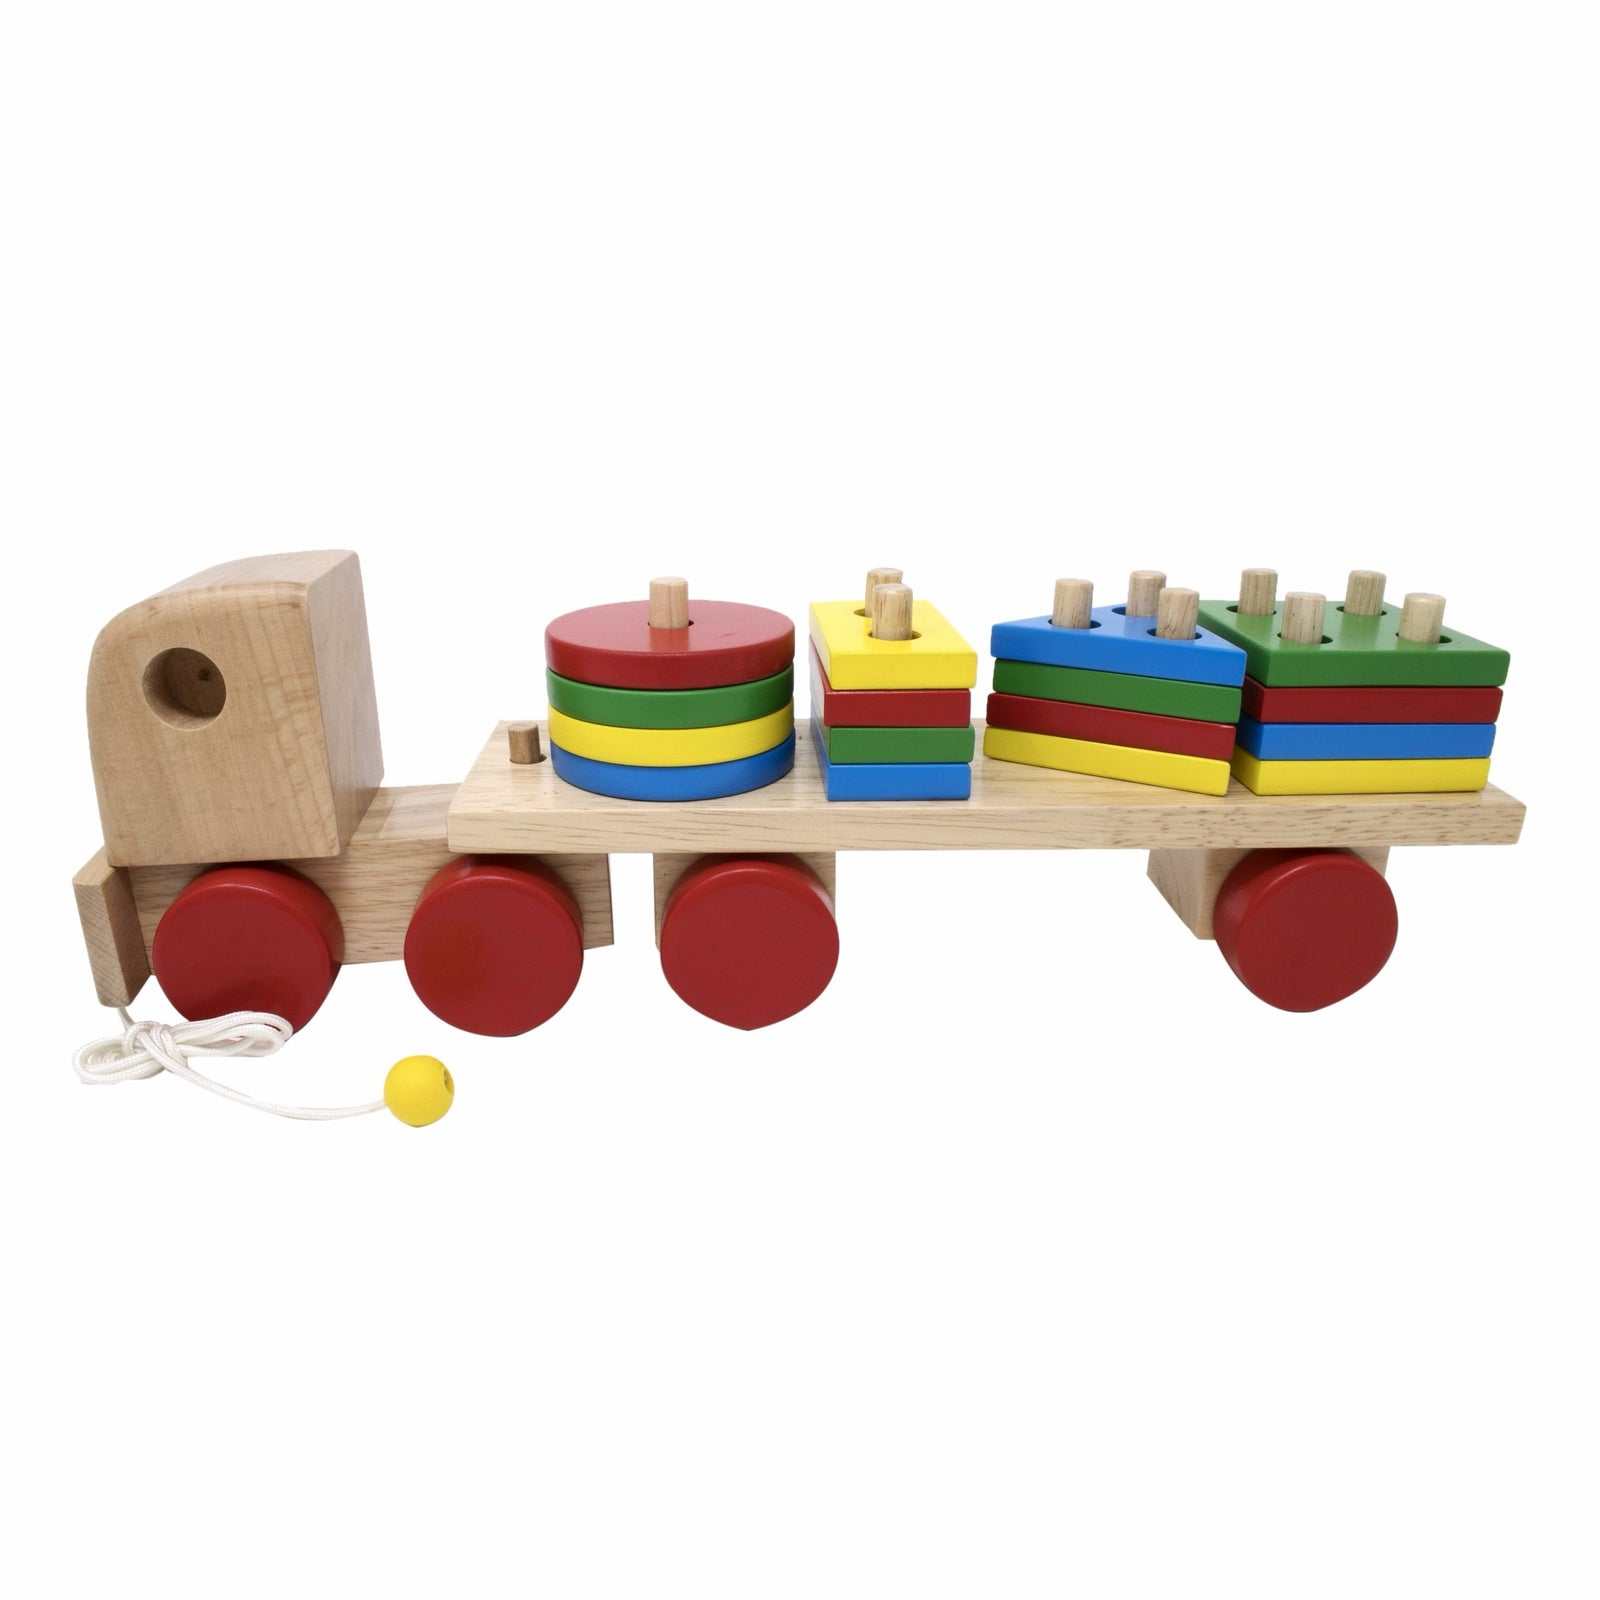 Geometric Stack sort Truck Early Learning Wooden Educational Toy